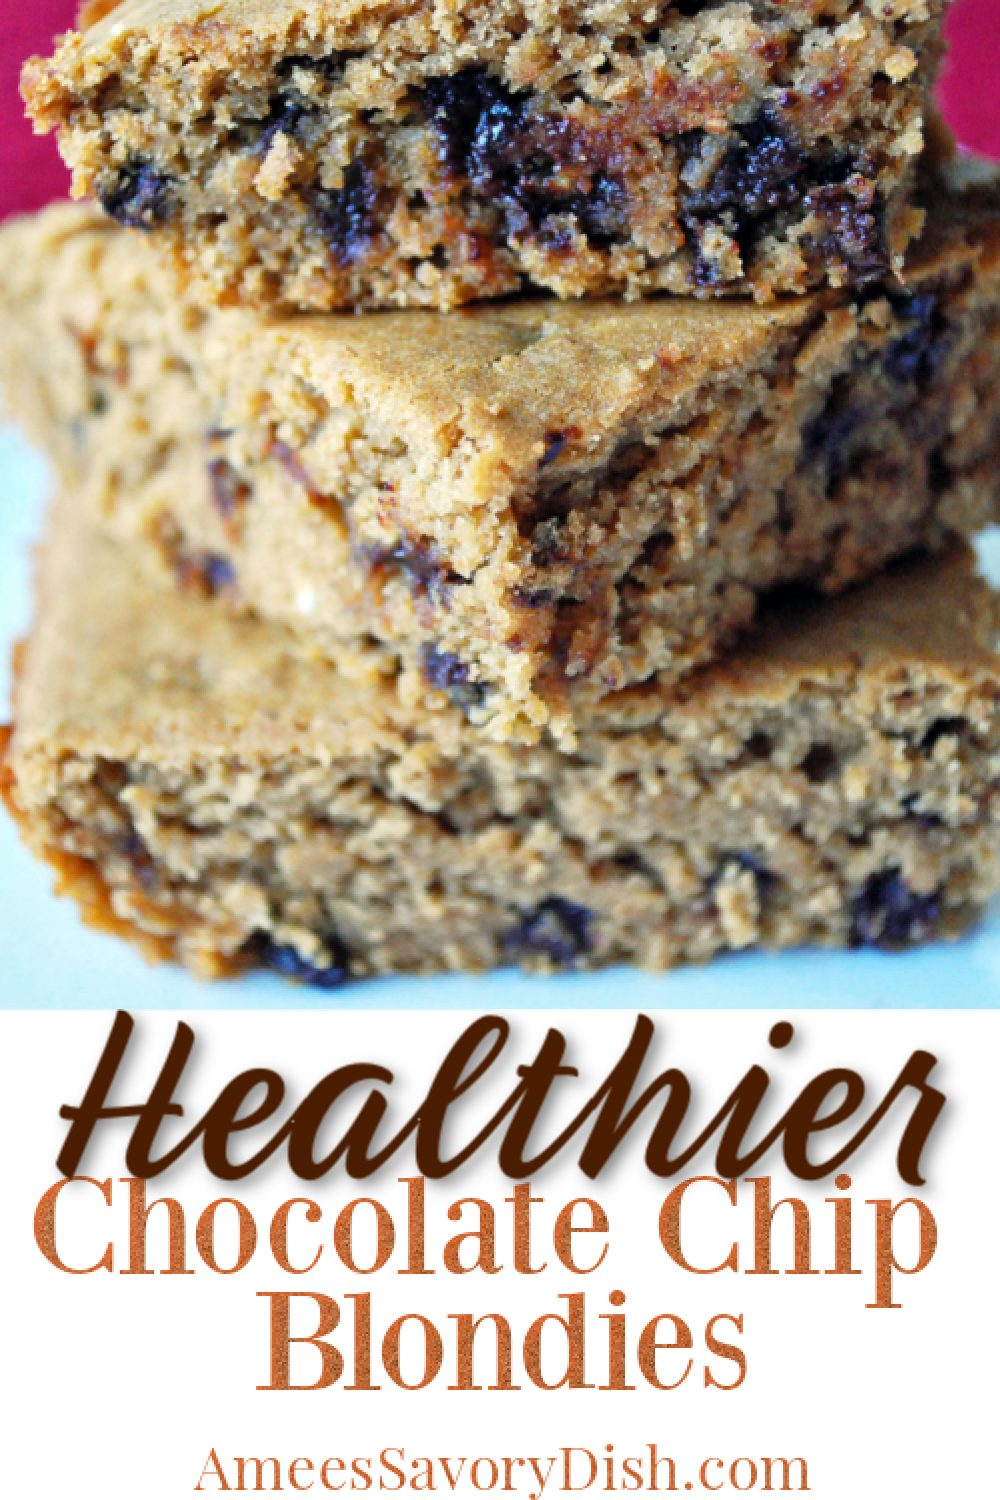 A delicious recipe for healthier chocolate chip blondies that uses a secret ingredient for added protein and fiber. These bars are moist and tasty! #beanbrownies #whitebeanblondies #healthierblondies #cleaneatingbrowines via @Ameessavorydish